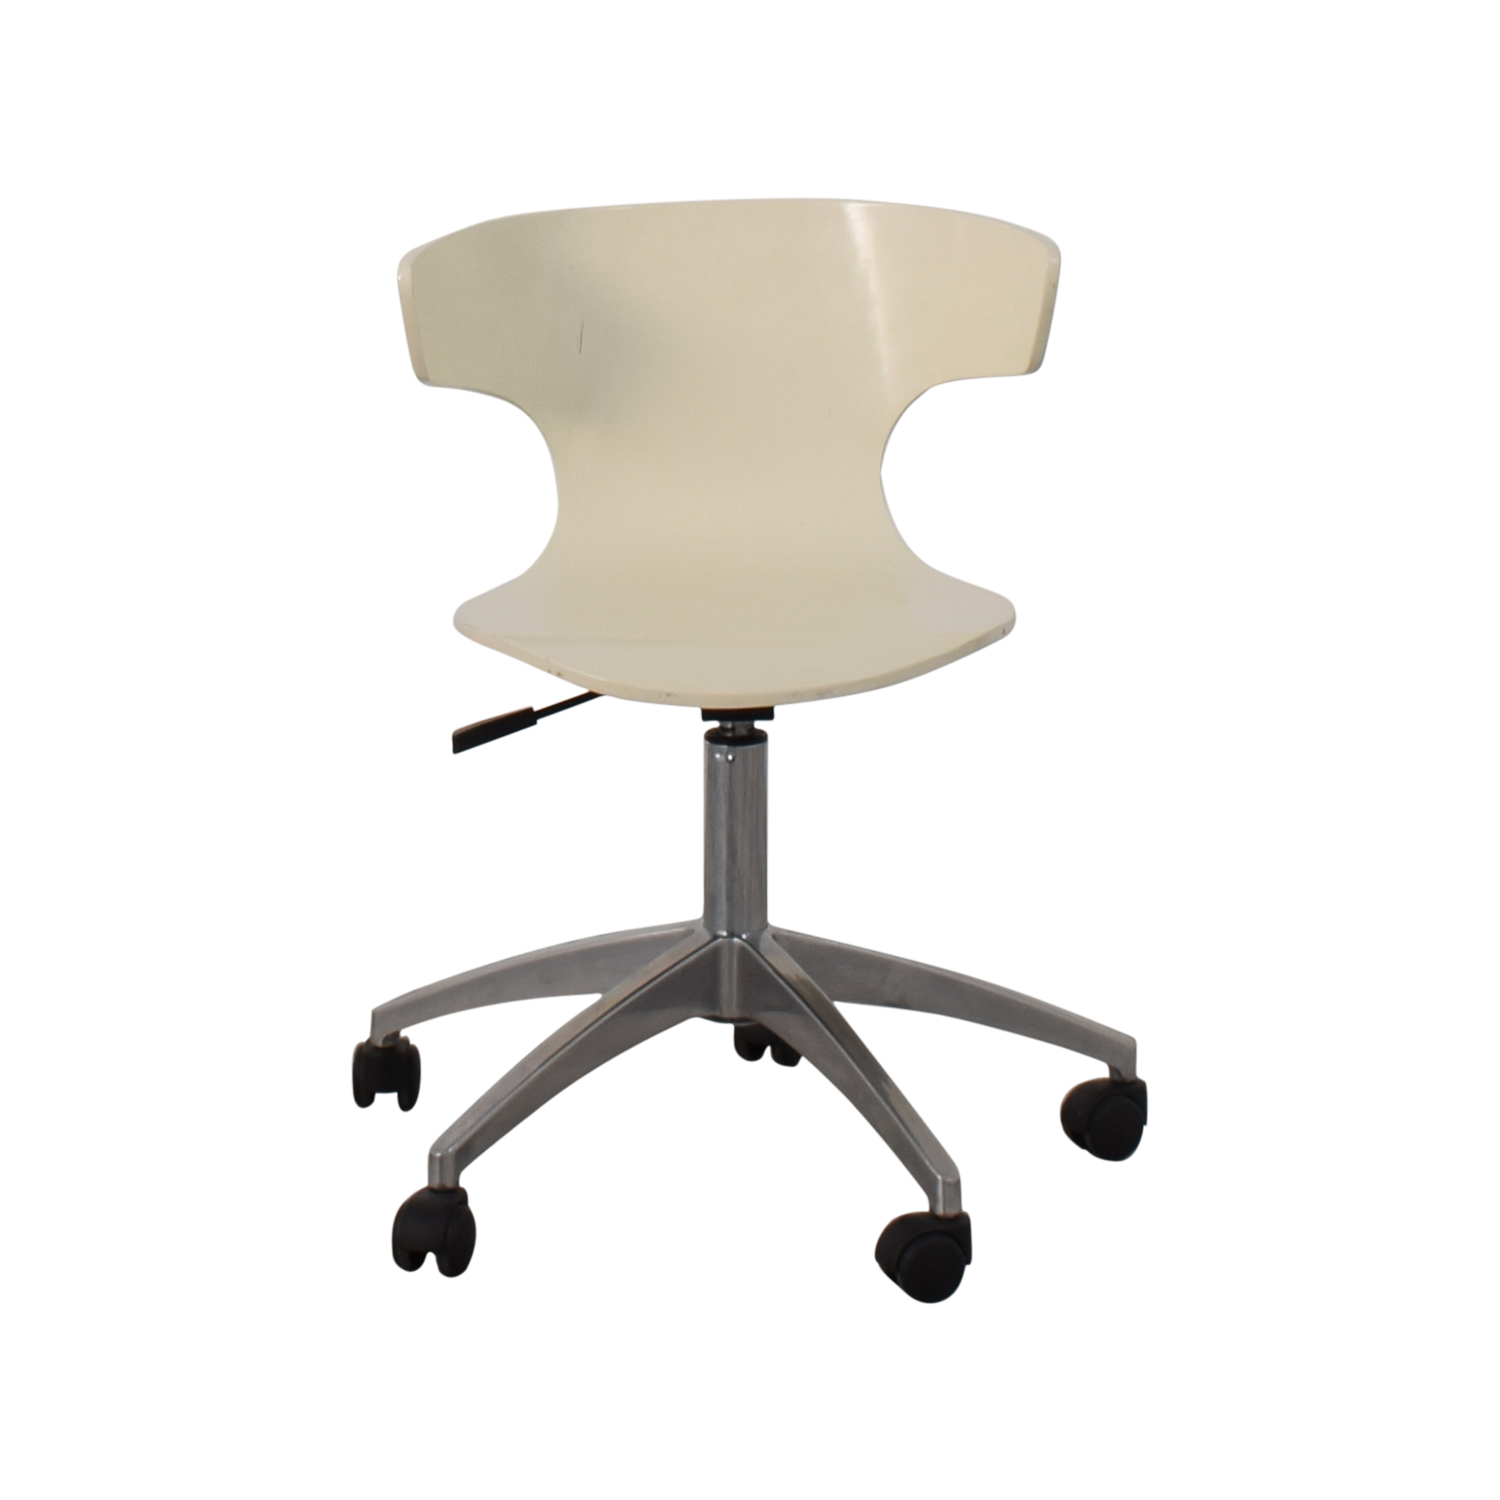 West Elm West Elm White Modern Chair with Casters Chairs